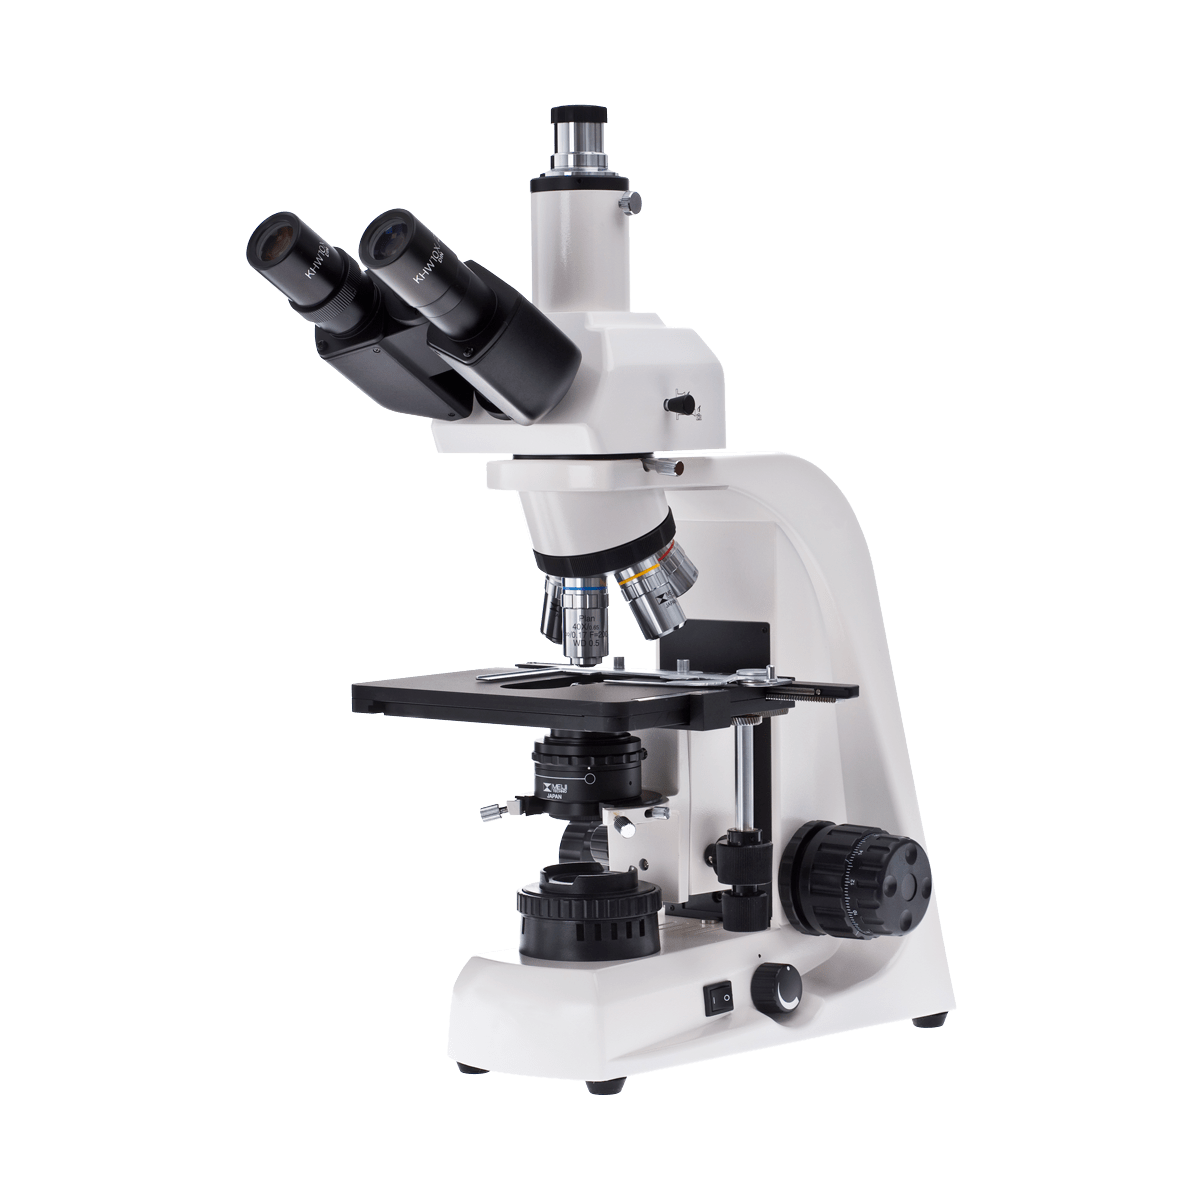 Ophthalmic surgery microscopes